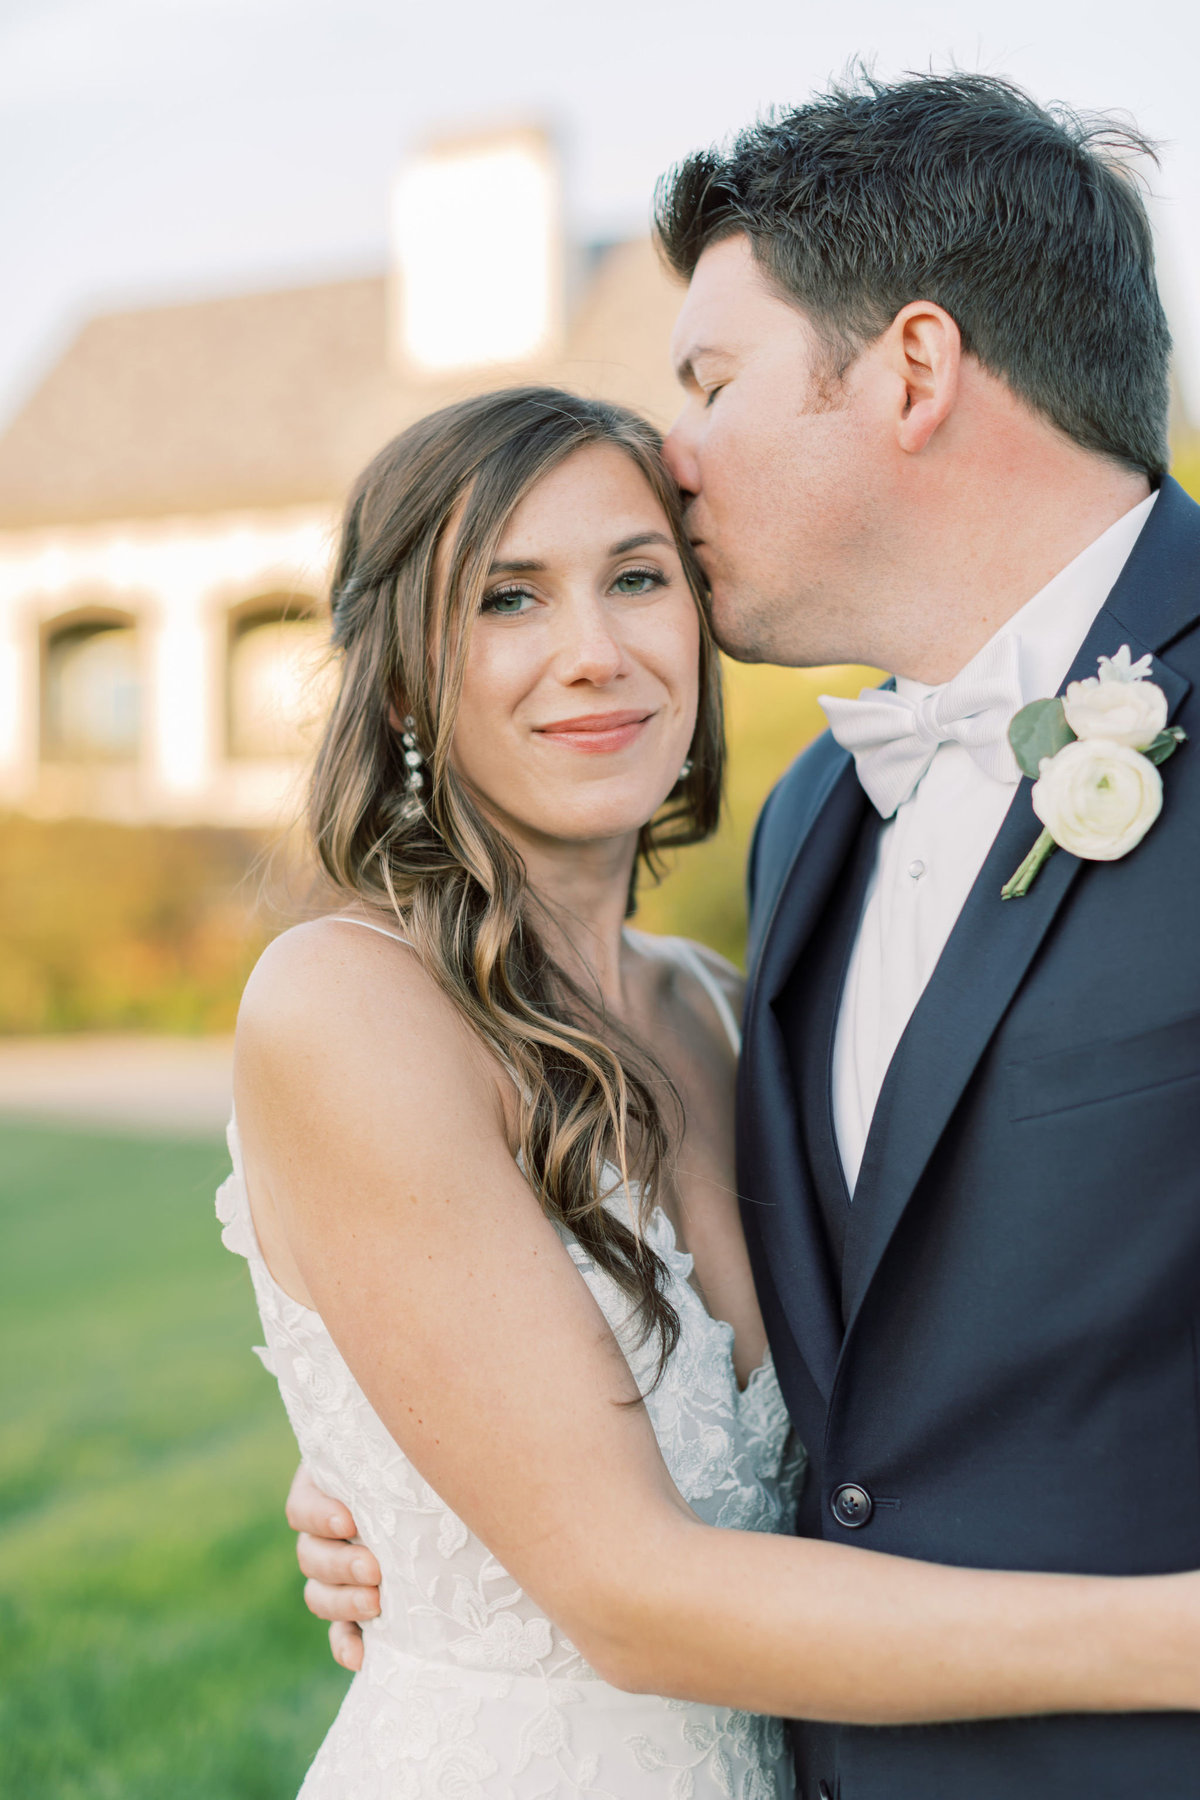 TiffaneyChildsPhotography-ChicagoWeddingPhotographer-Chloe+Jon-HinsdaleCountryClubWedding-BridalPortraits-83